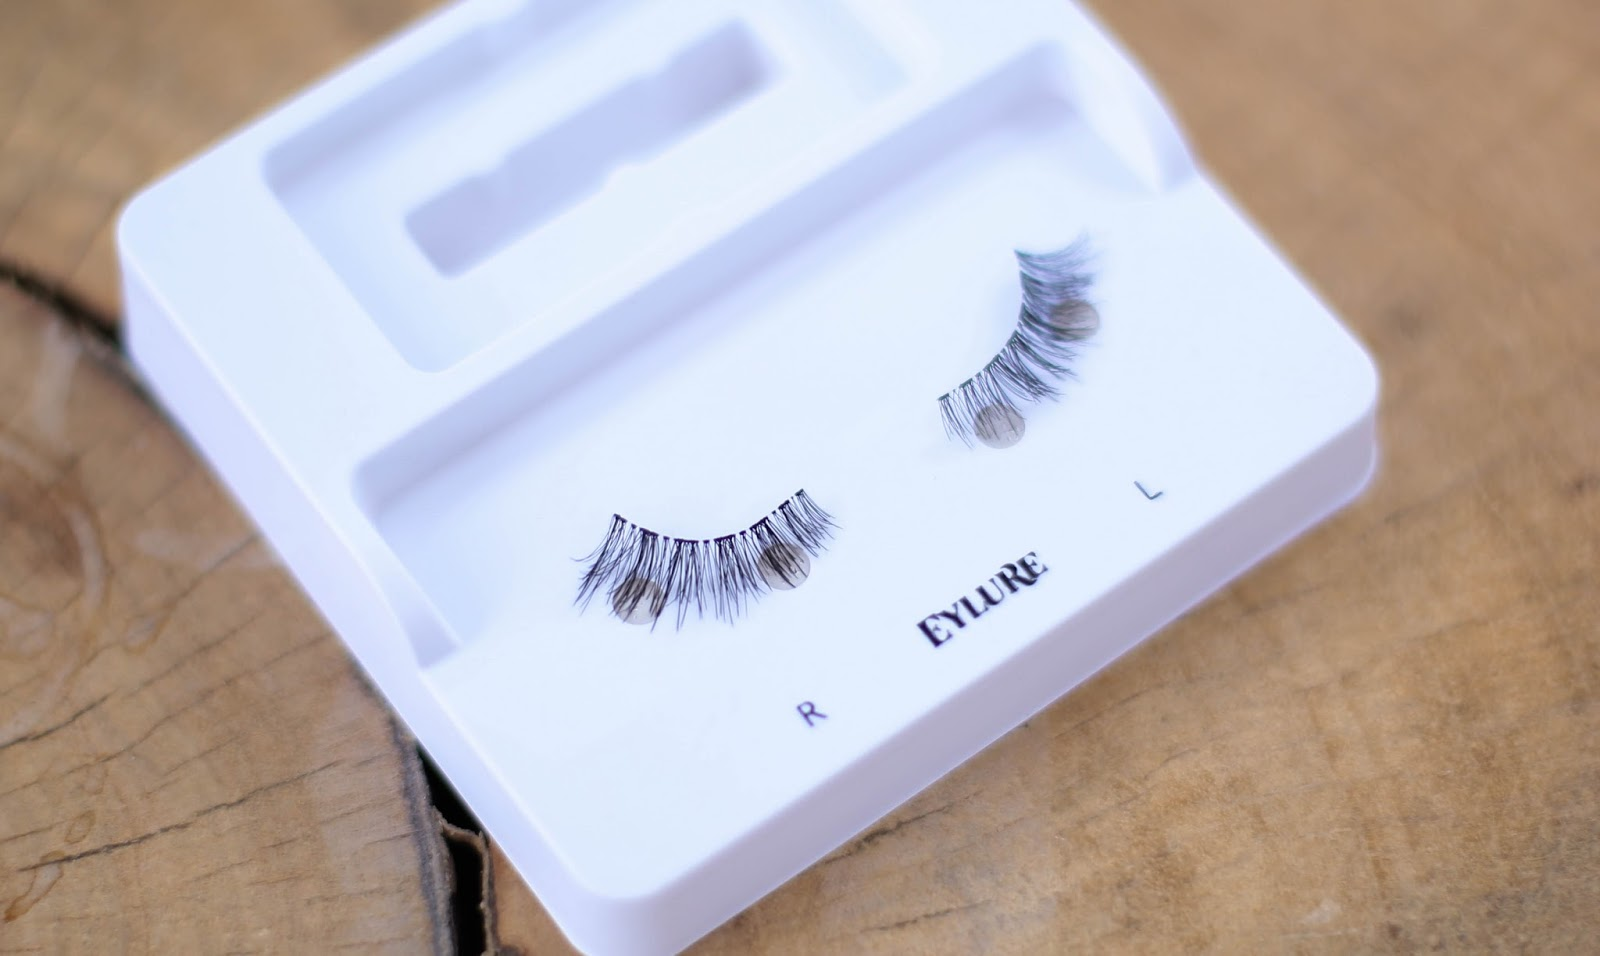 8ea7f003525 The second new design is called 'Fully Fleur' and these are a full strip  lash with a similar, natural texture and slight criss-cross design that  Fleur Loves ...